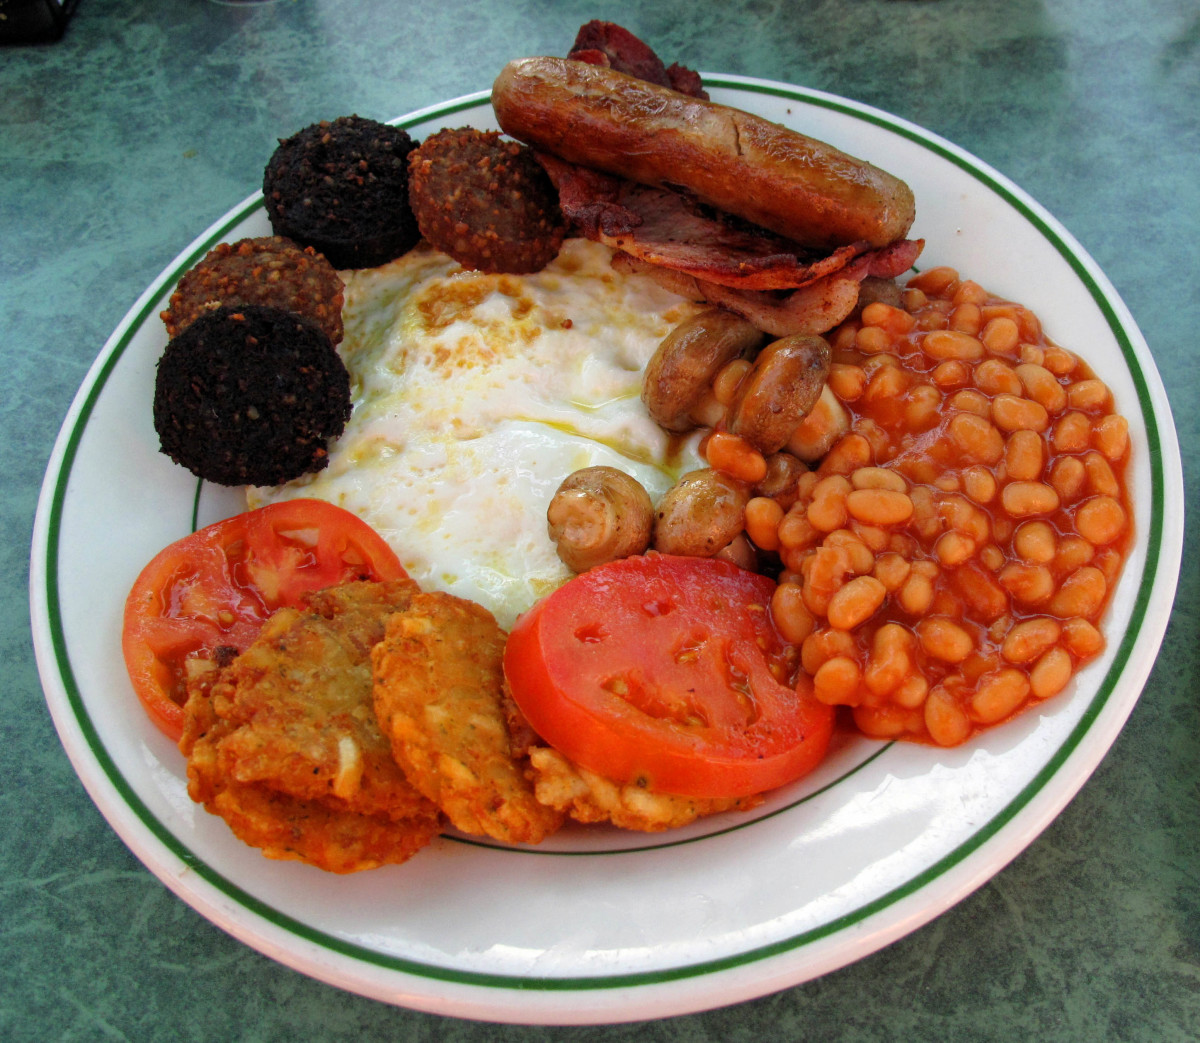 A typical Old Country Breakfast plate.